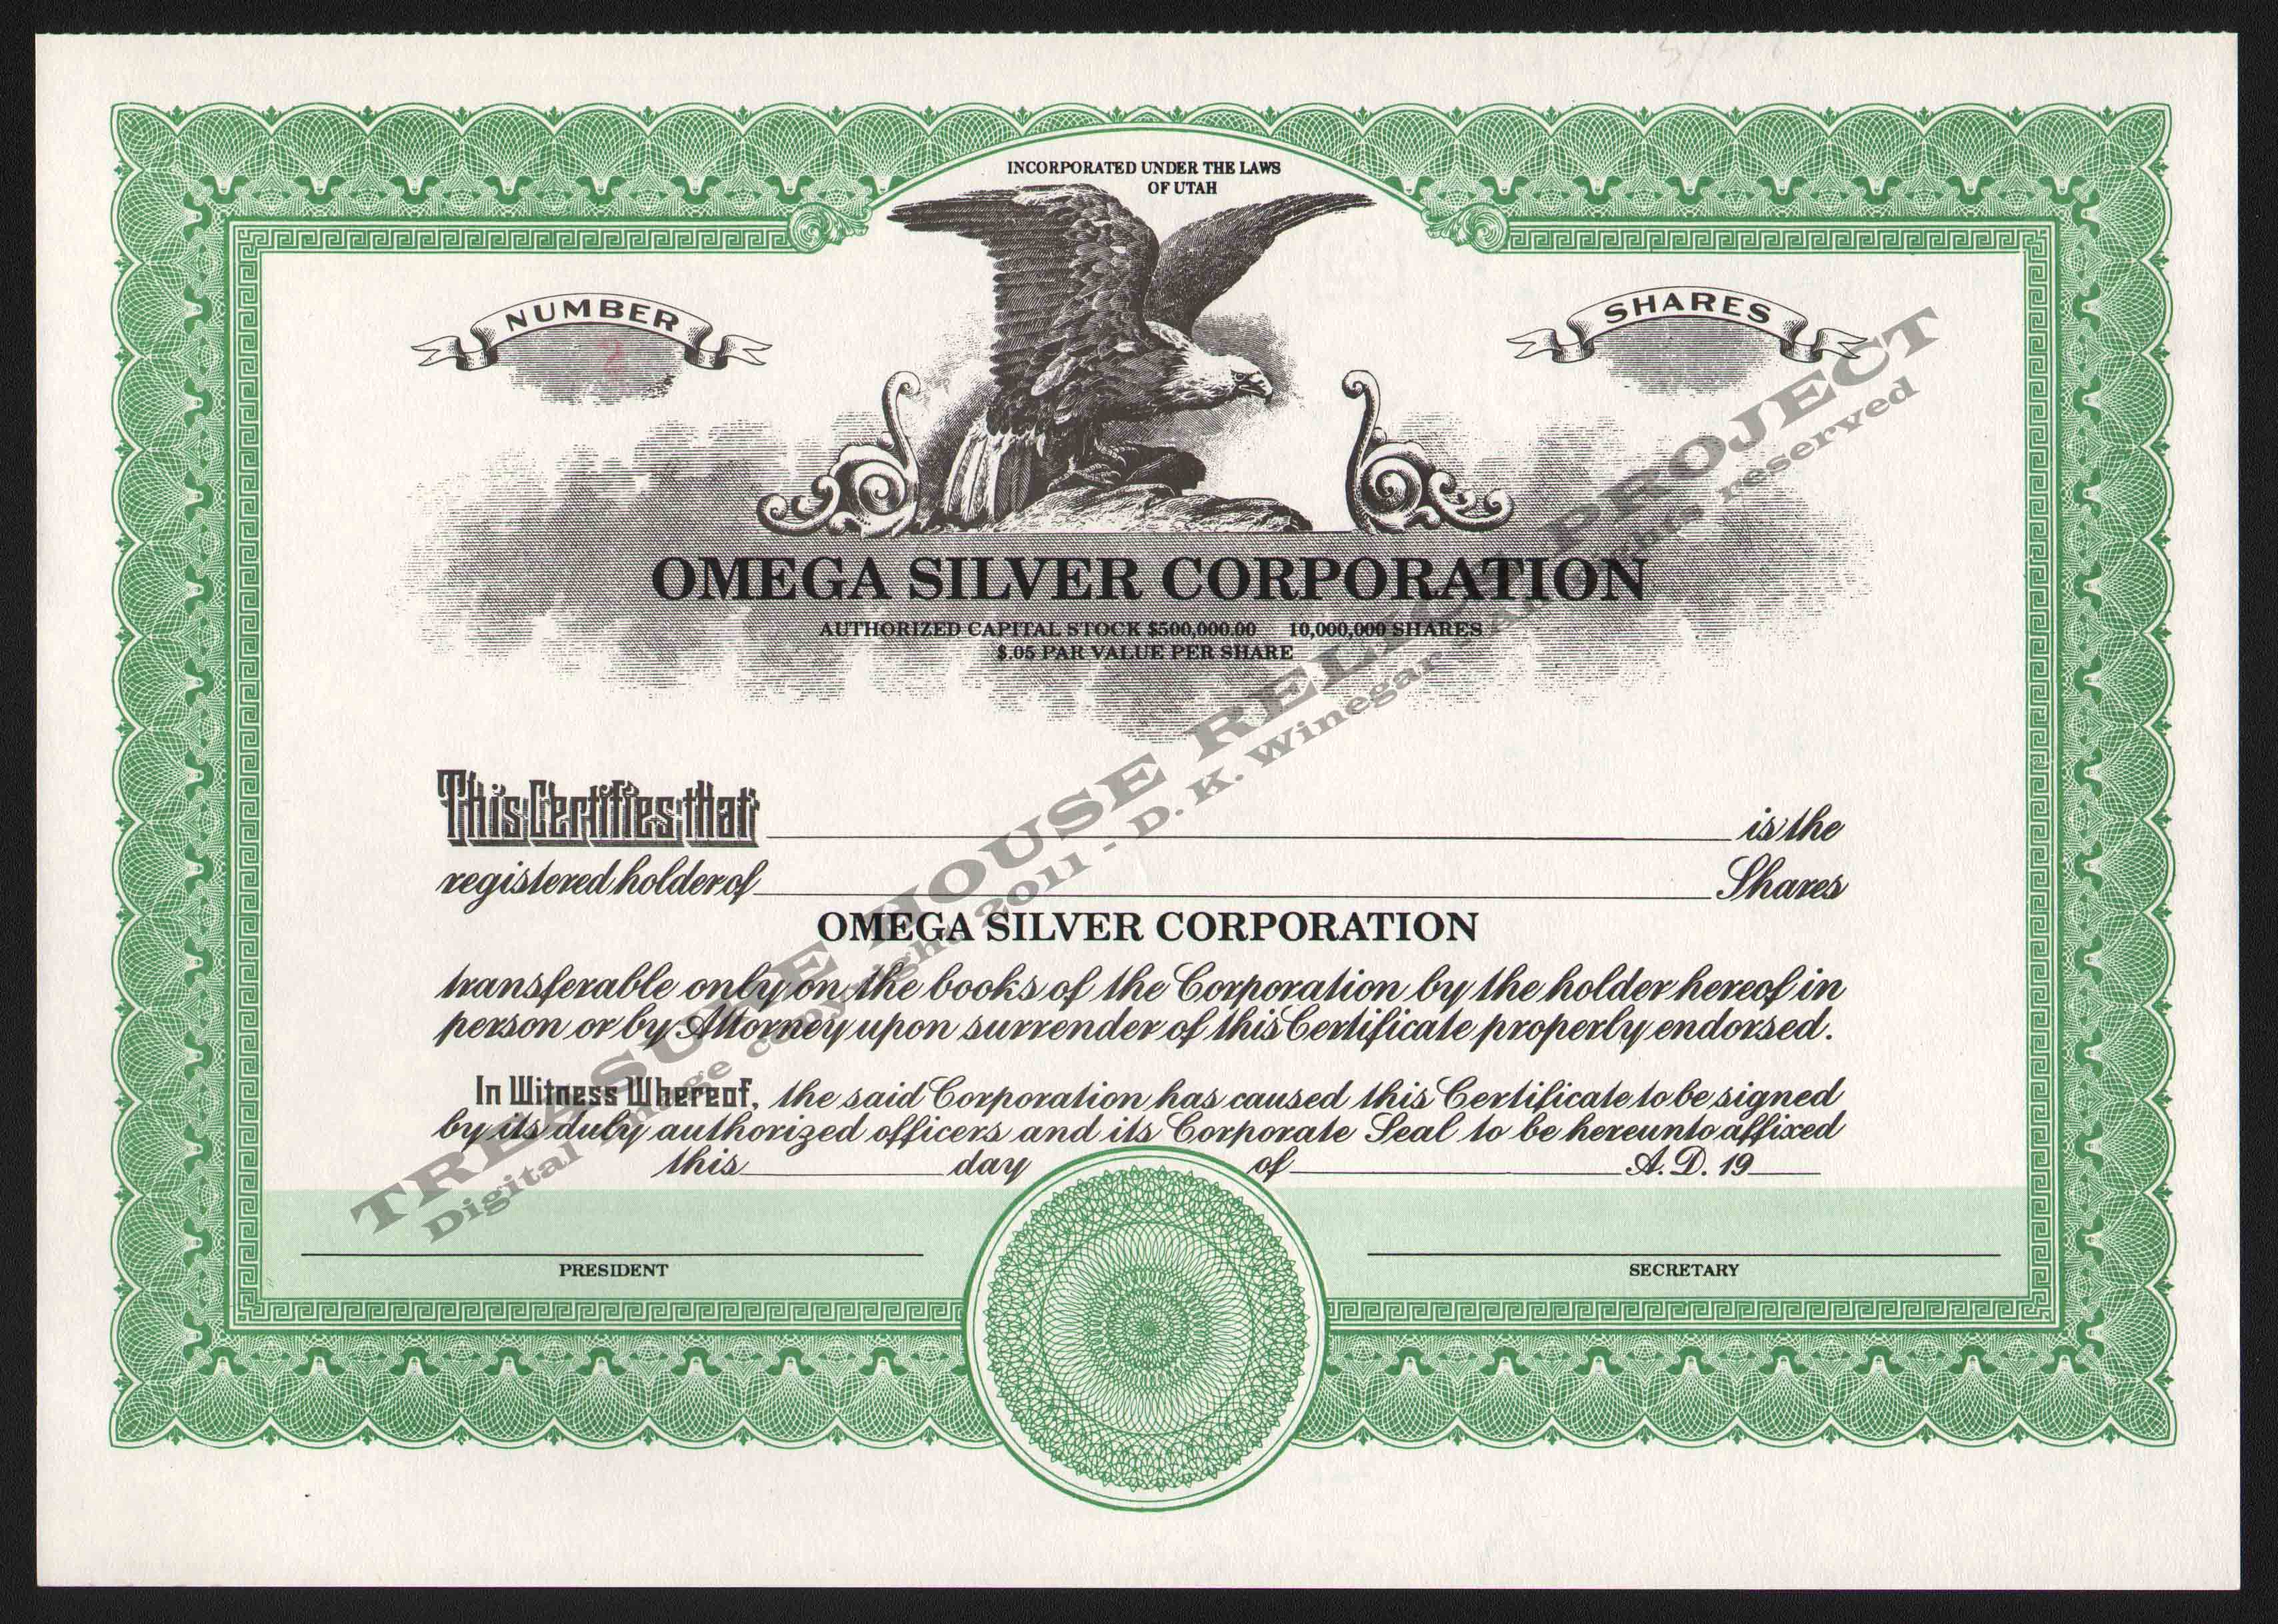 OMEGA_SILVER_CORP_NNNI_300_EMBOSS.jpg